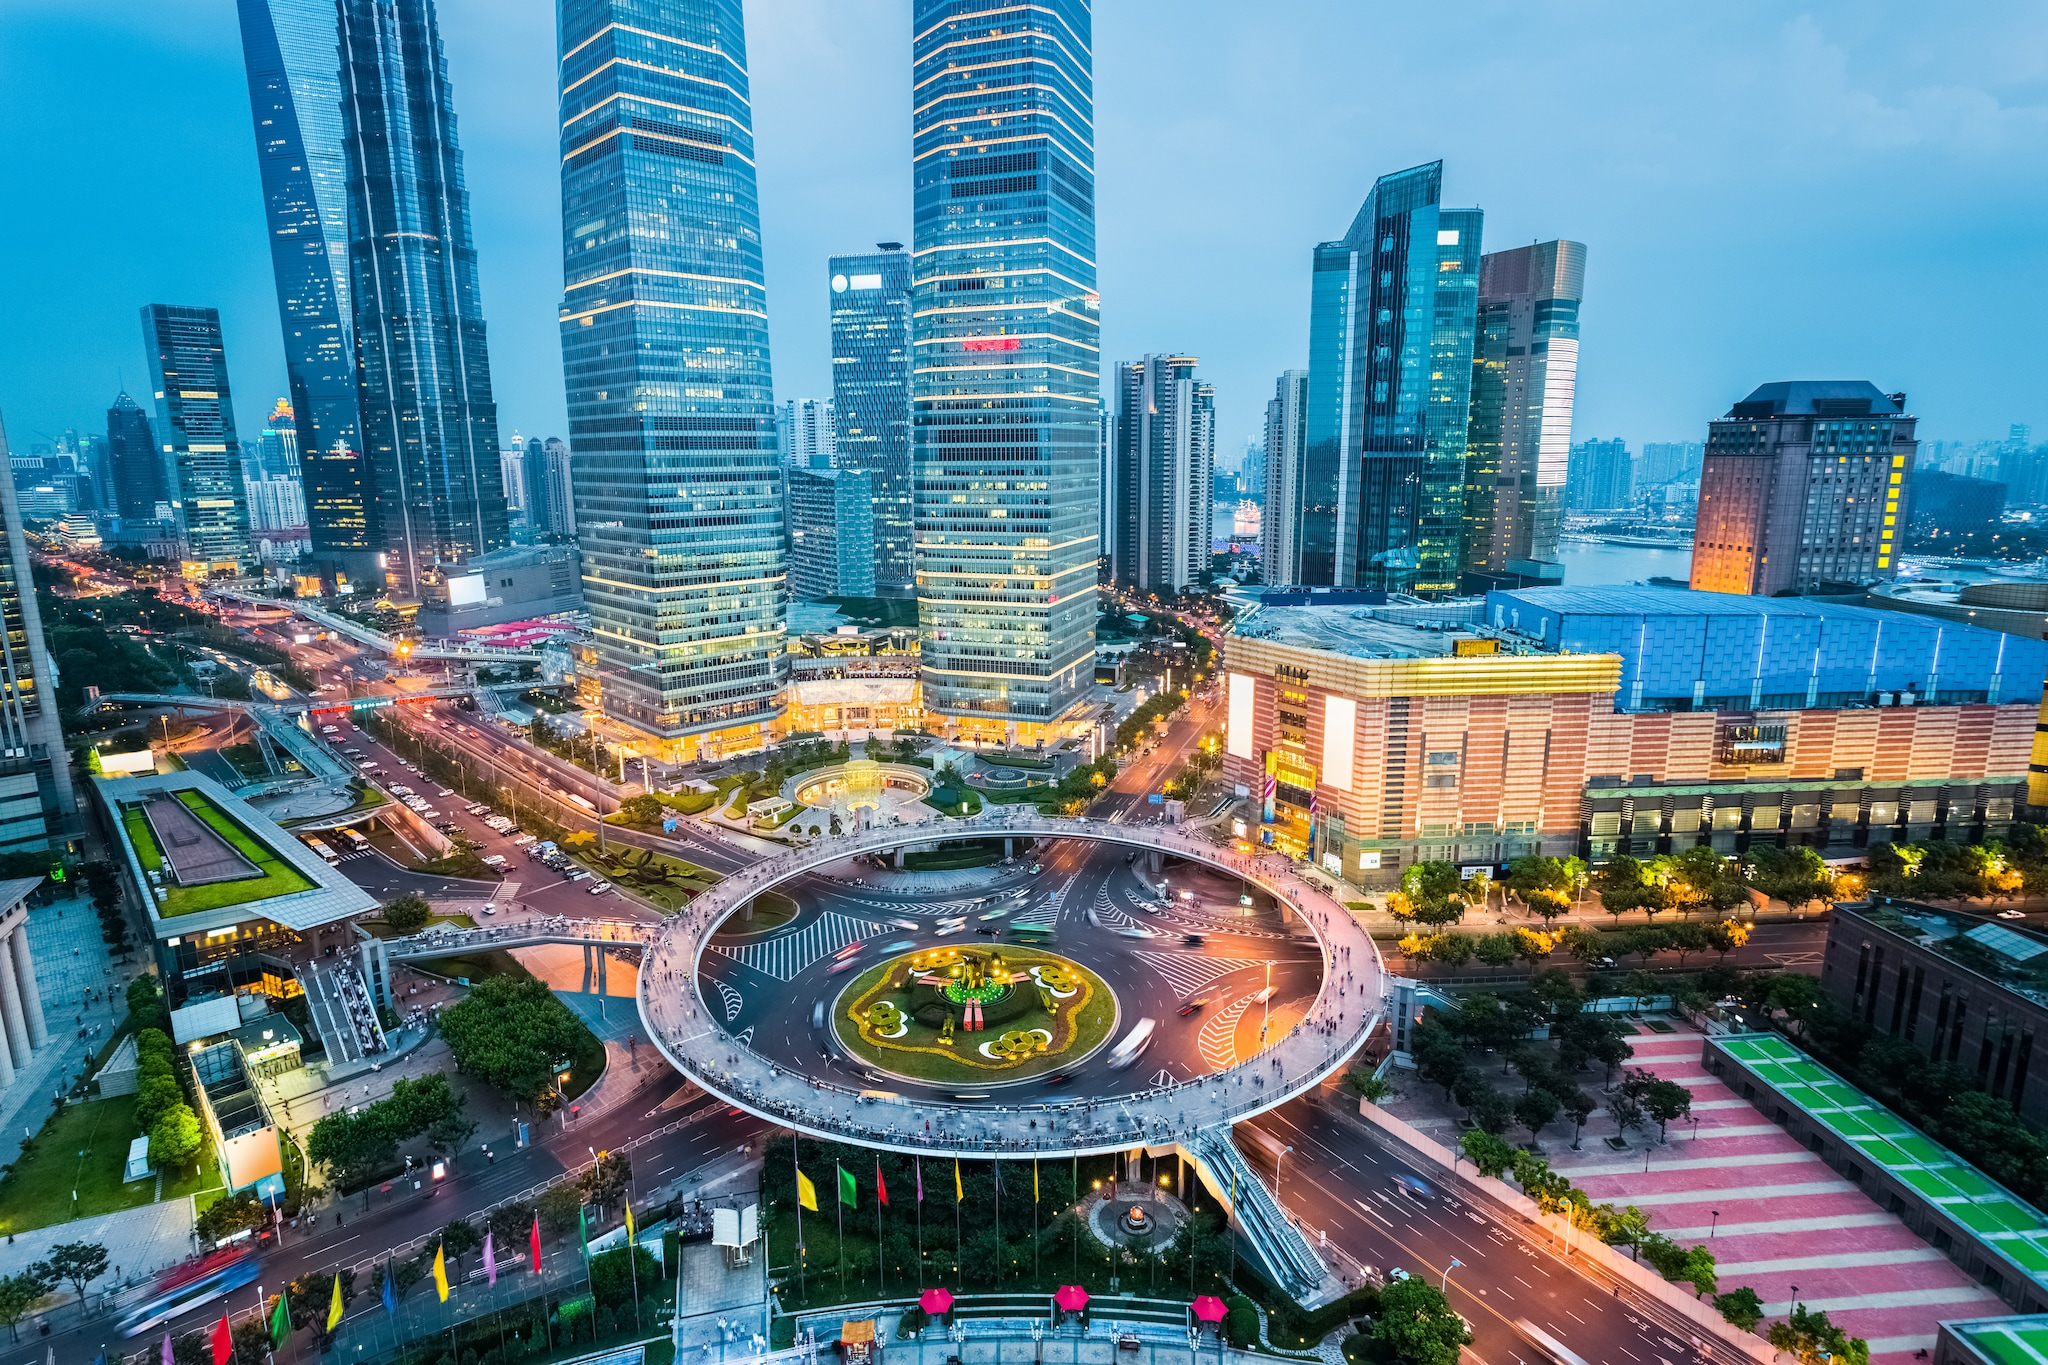 Central business district in Shanghai